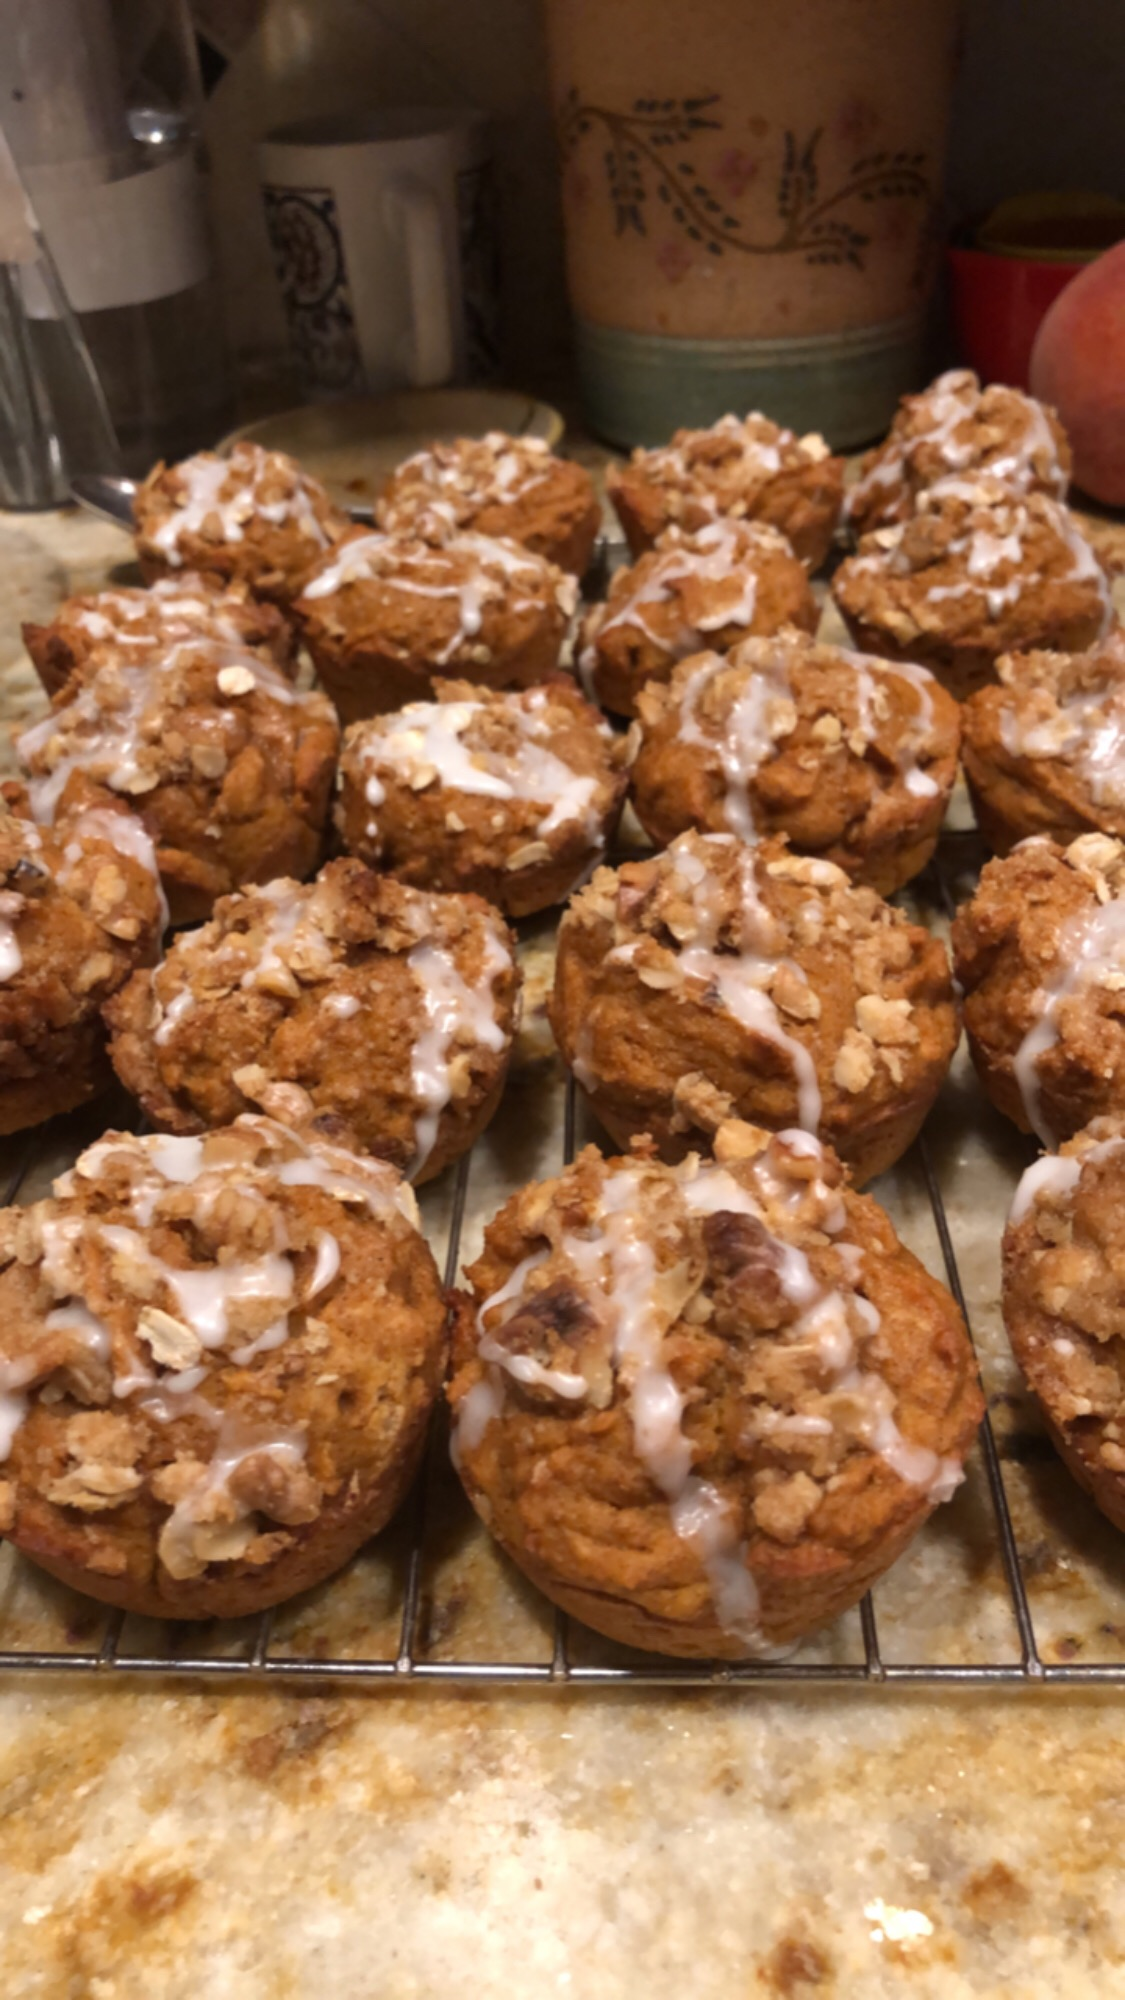 Skinny Pumpkin Spice Muffins with Walnut Streusel Teddy O'Connell Buell